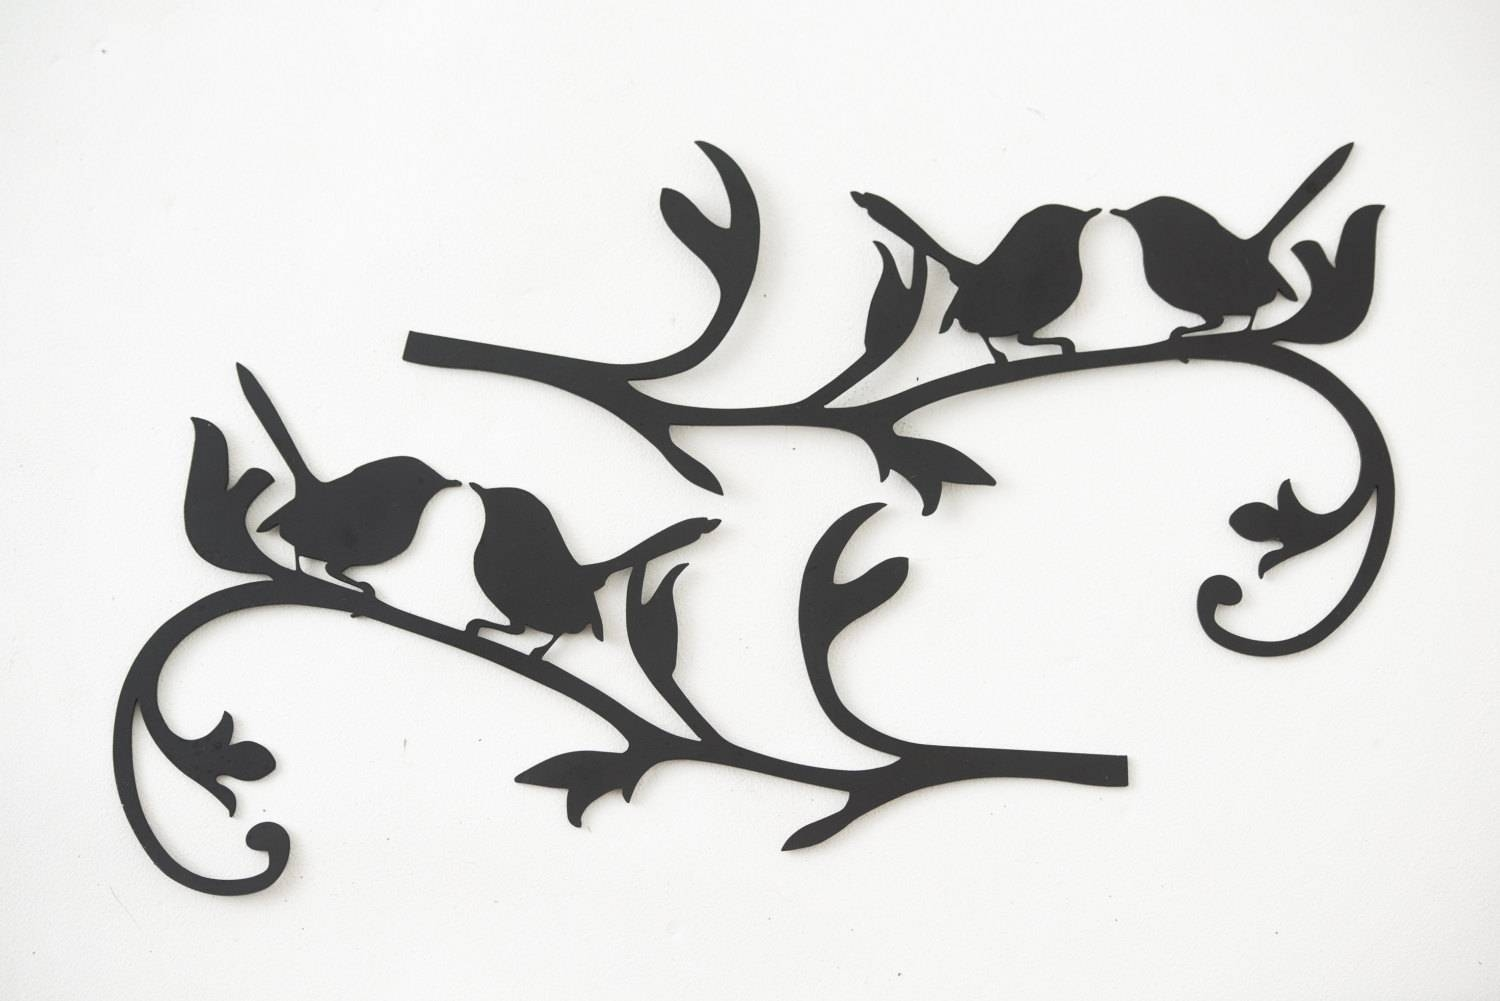 Wall Art Designs: Metal Bird Wall Art Hand Drawn And Laser Cut With Regard To Latest Birds Metal Wall Art (Gallery 7 of 20)